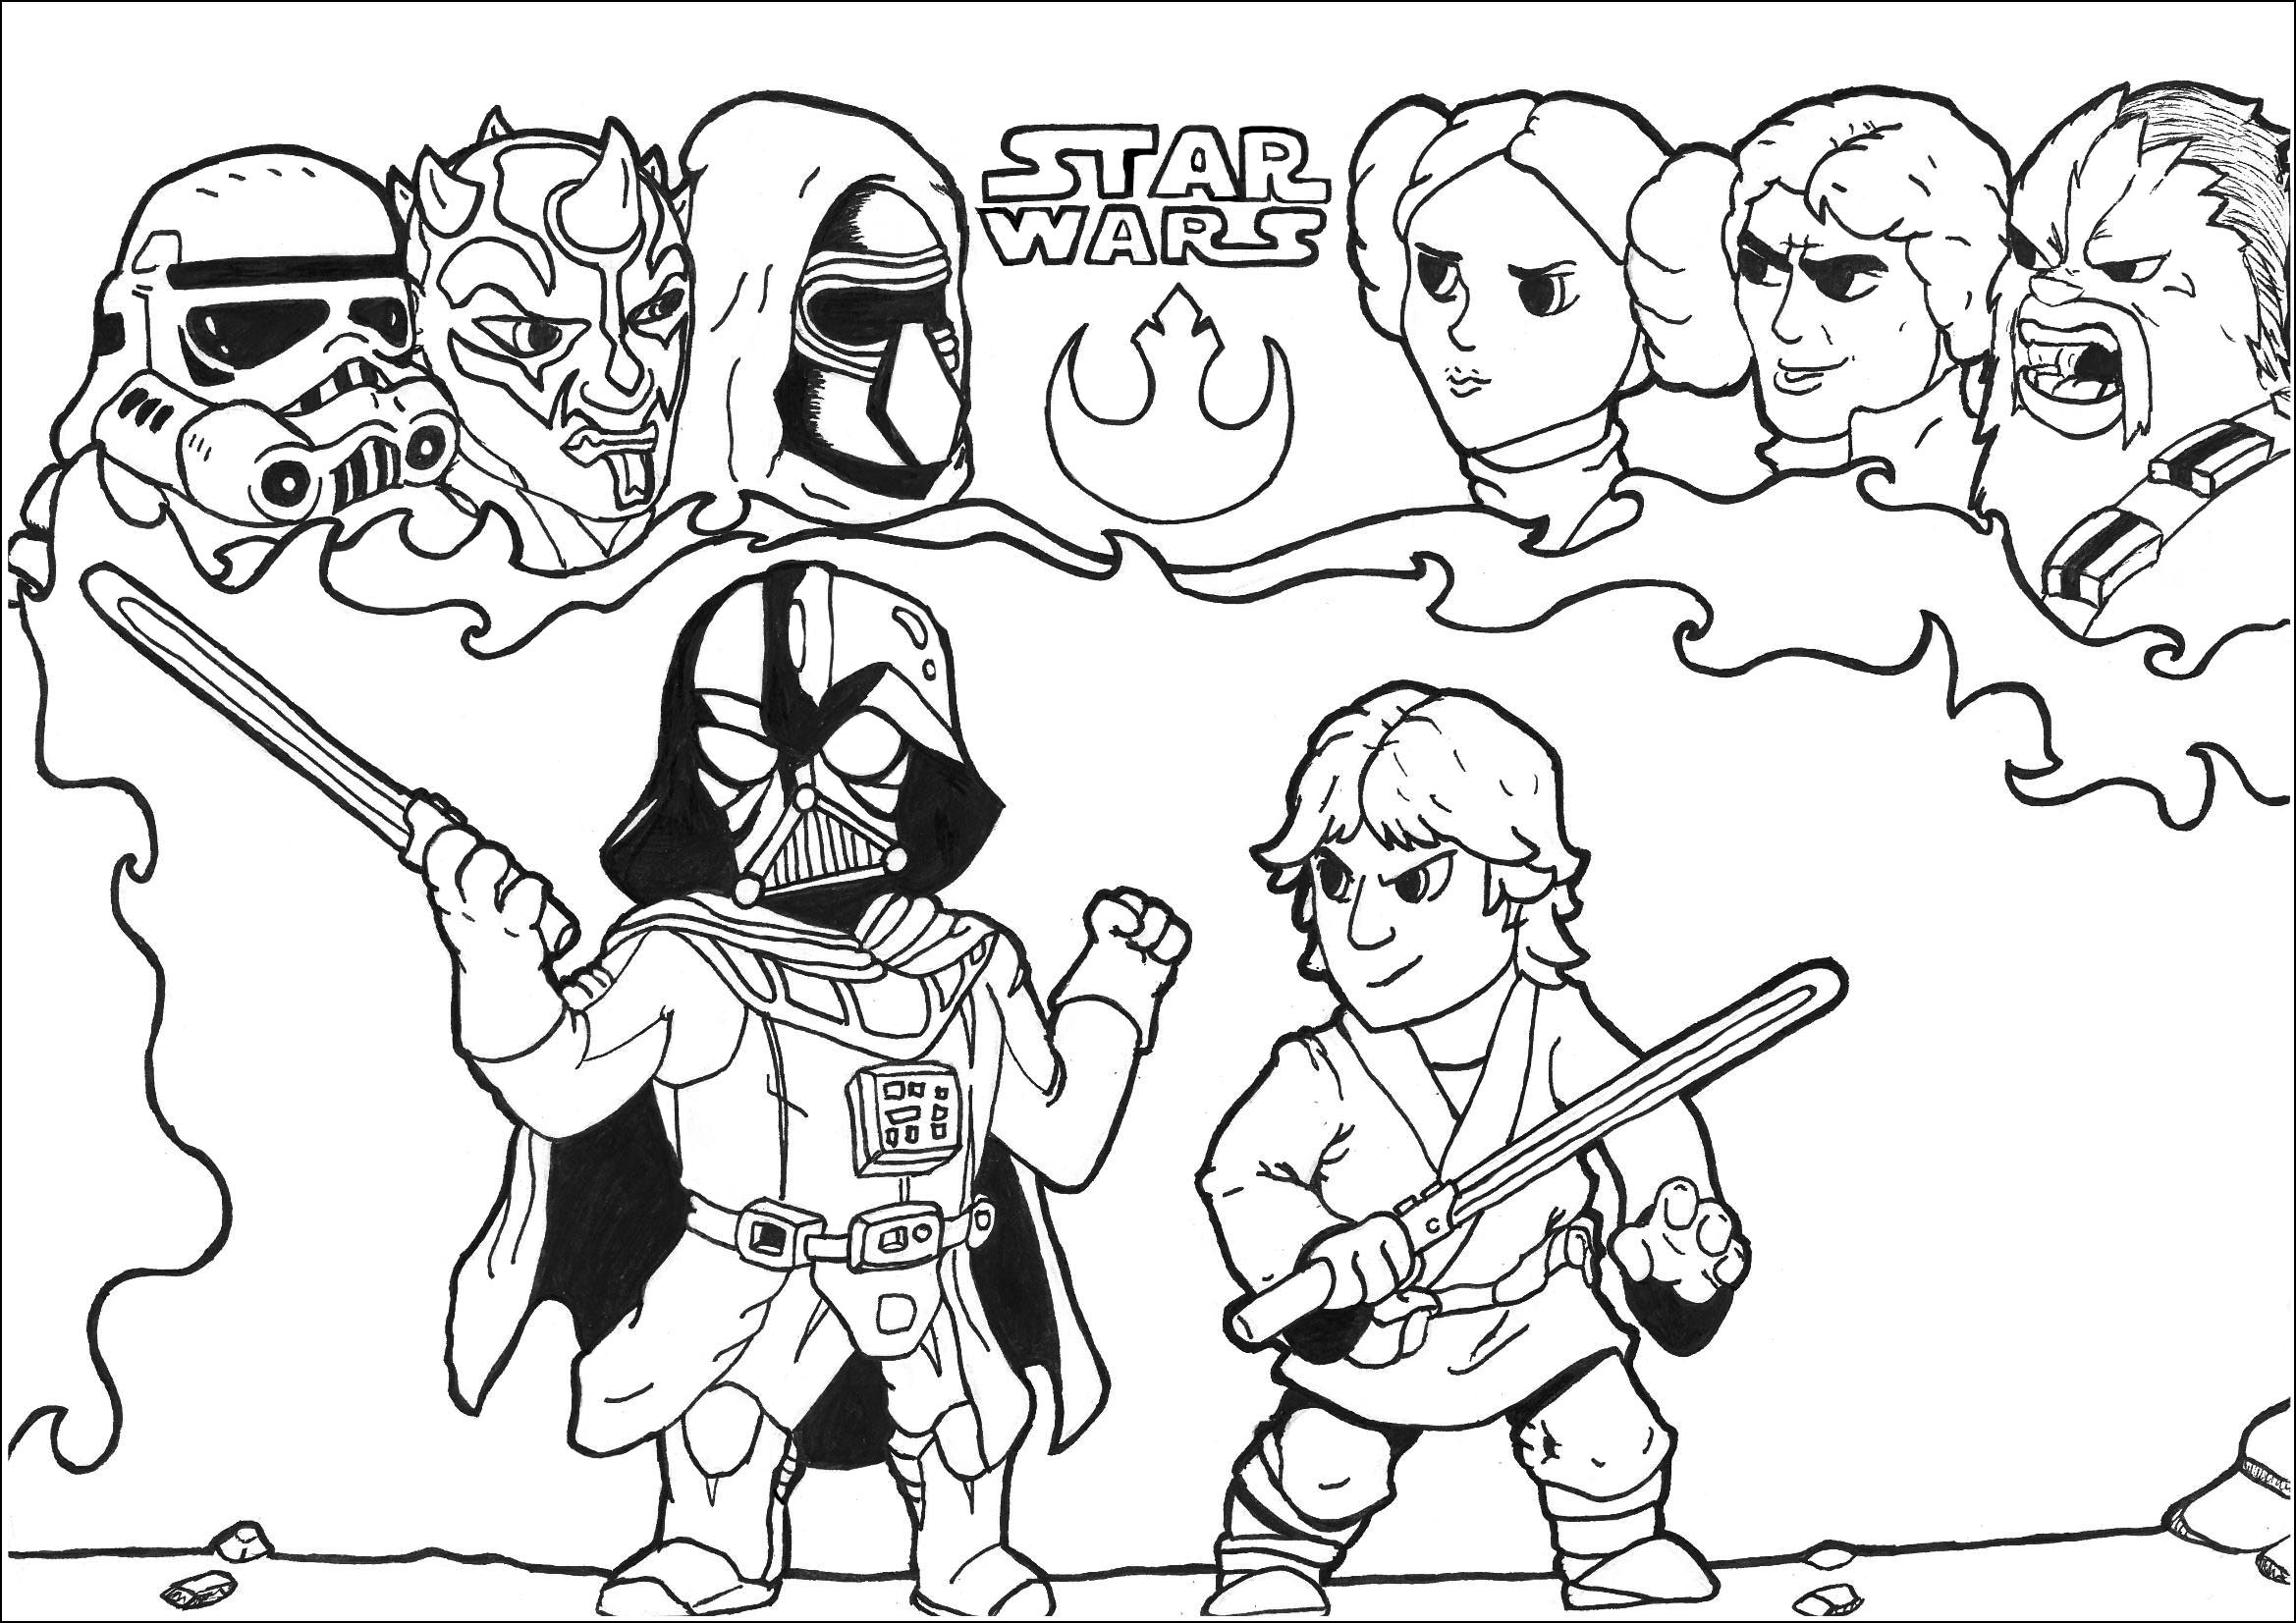 star wars coloring page star wars shock trooper coloring pages star wars coloring coloring wars page star